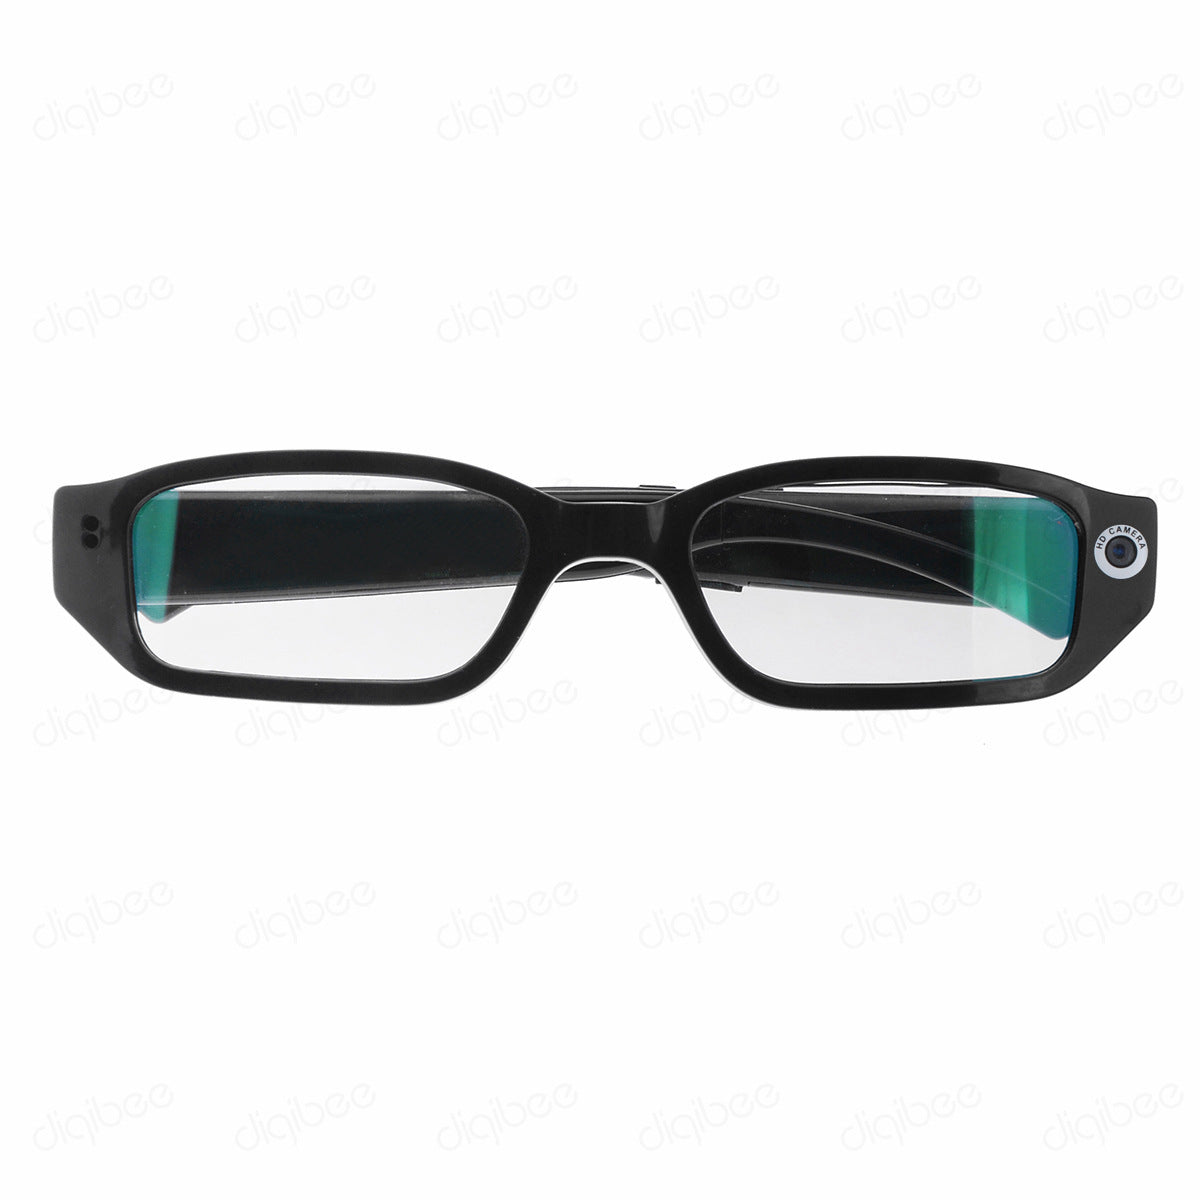 Optic Frame With Wearable Camera